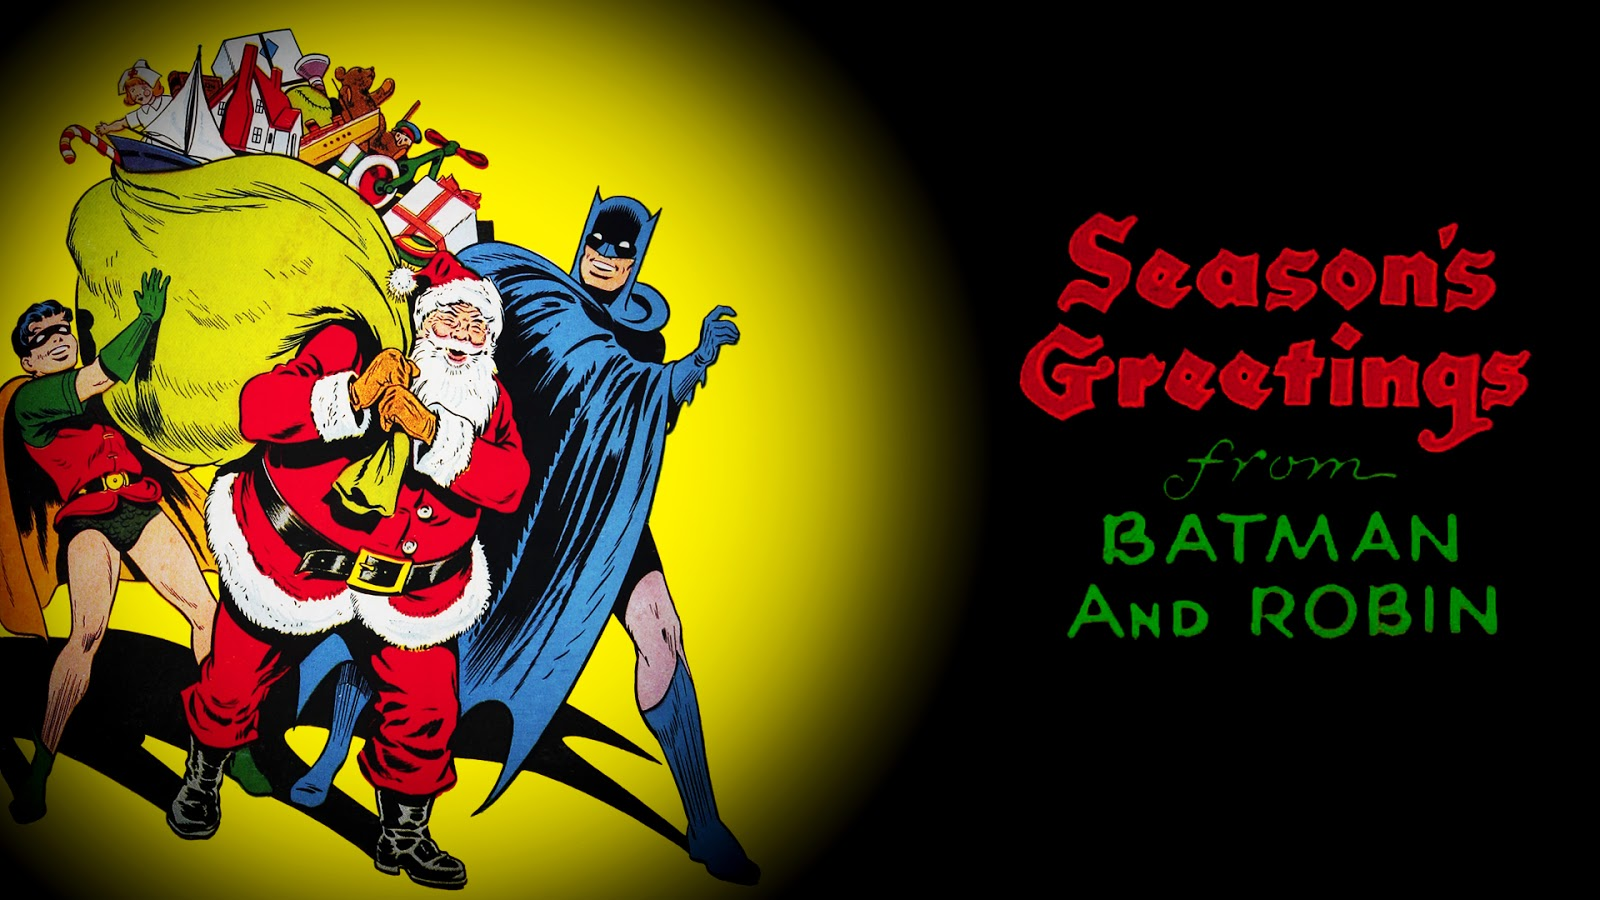 Neato Coolville COMIC BOOK WALLAPER CHRISTMAS COVERS 1600x900